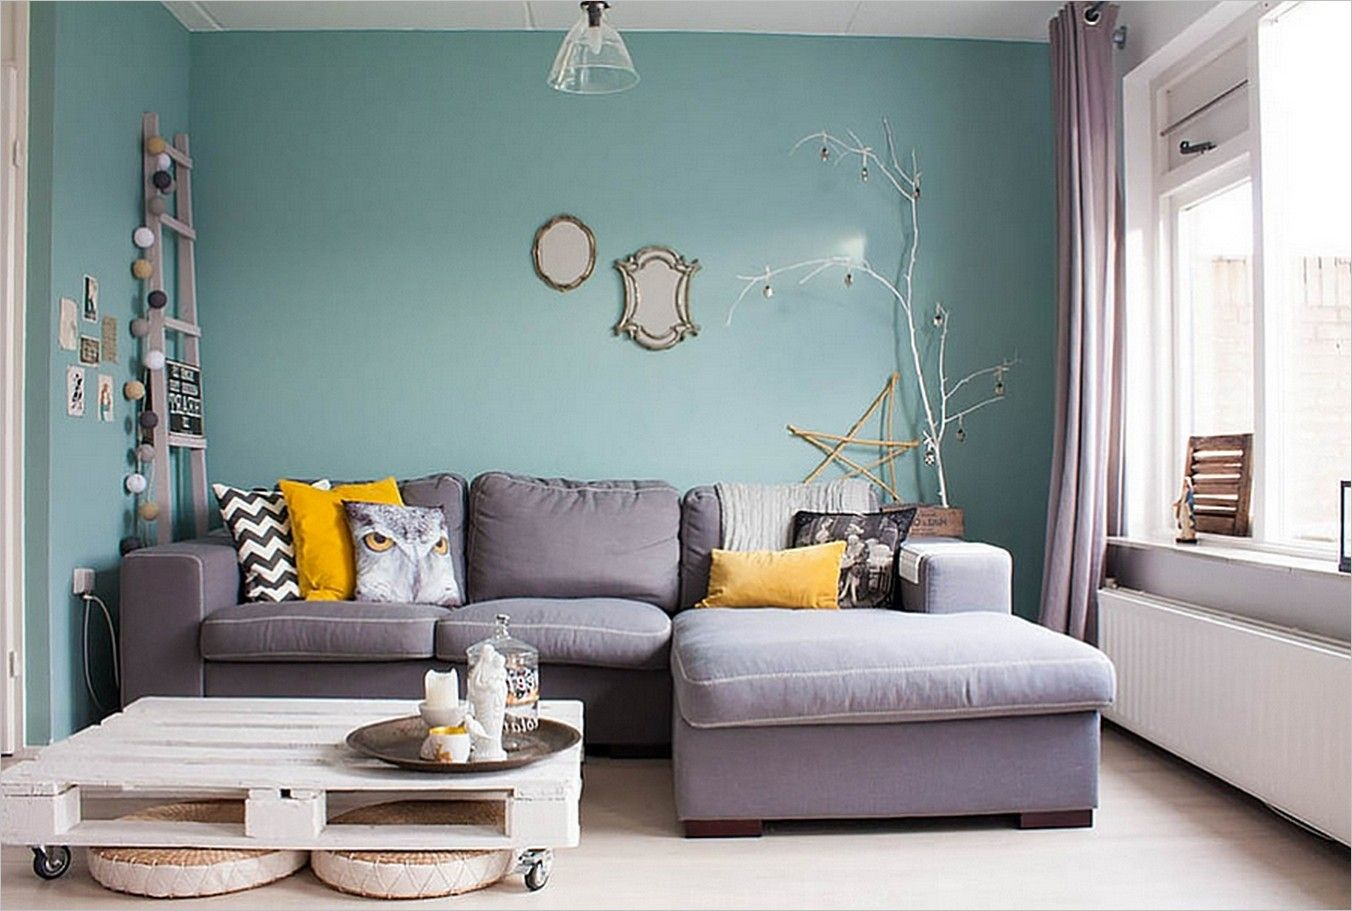 Lovely living room interior desig with blue wall paint for Living room designs and colors